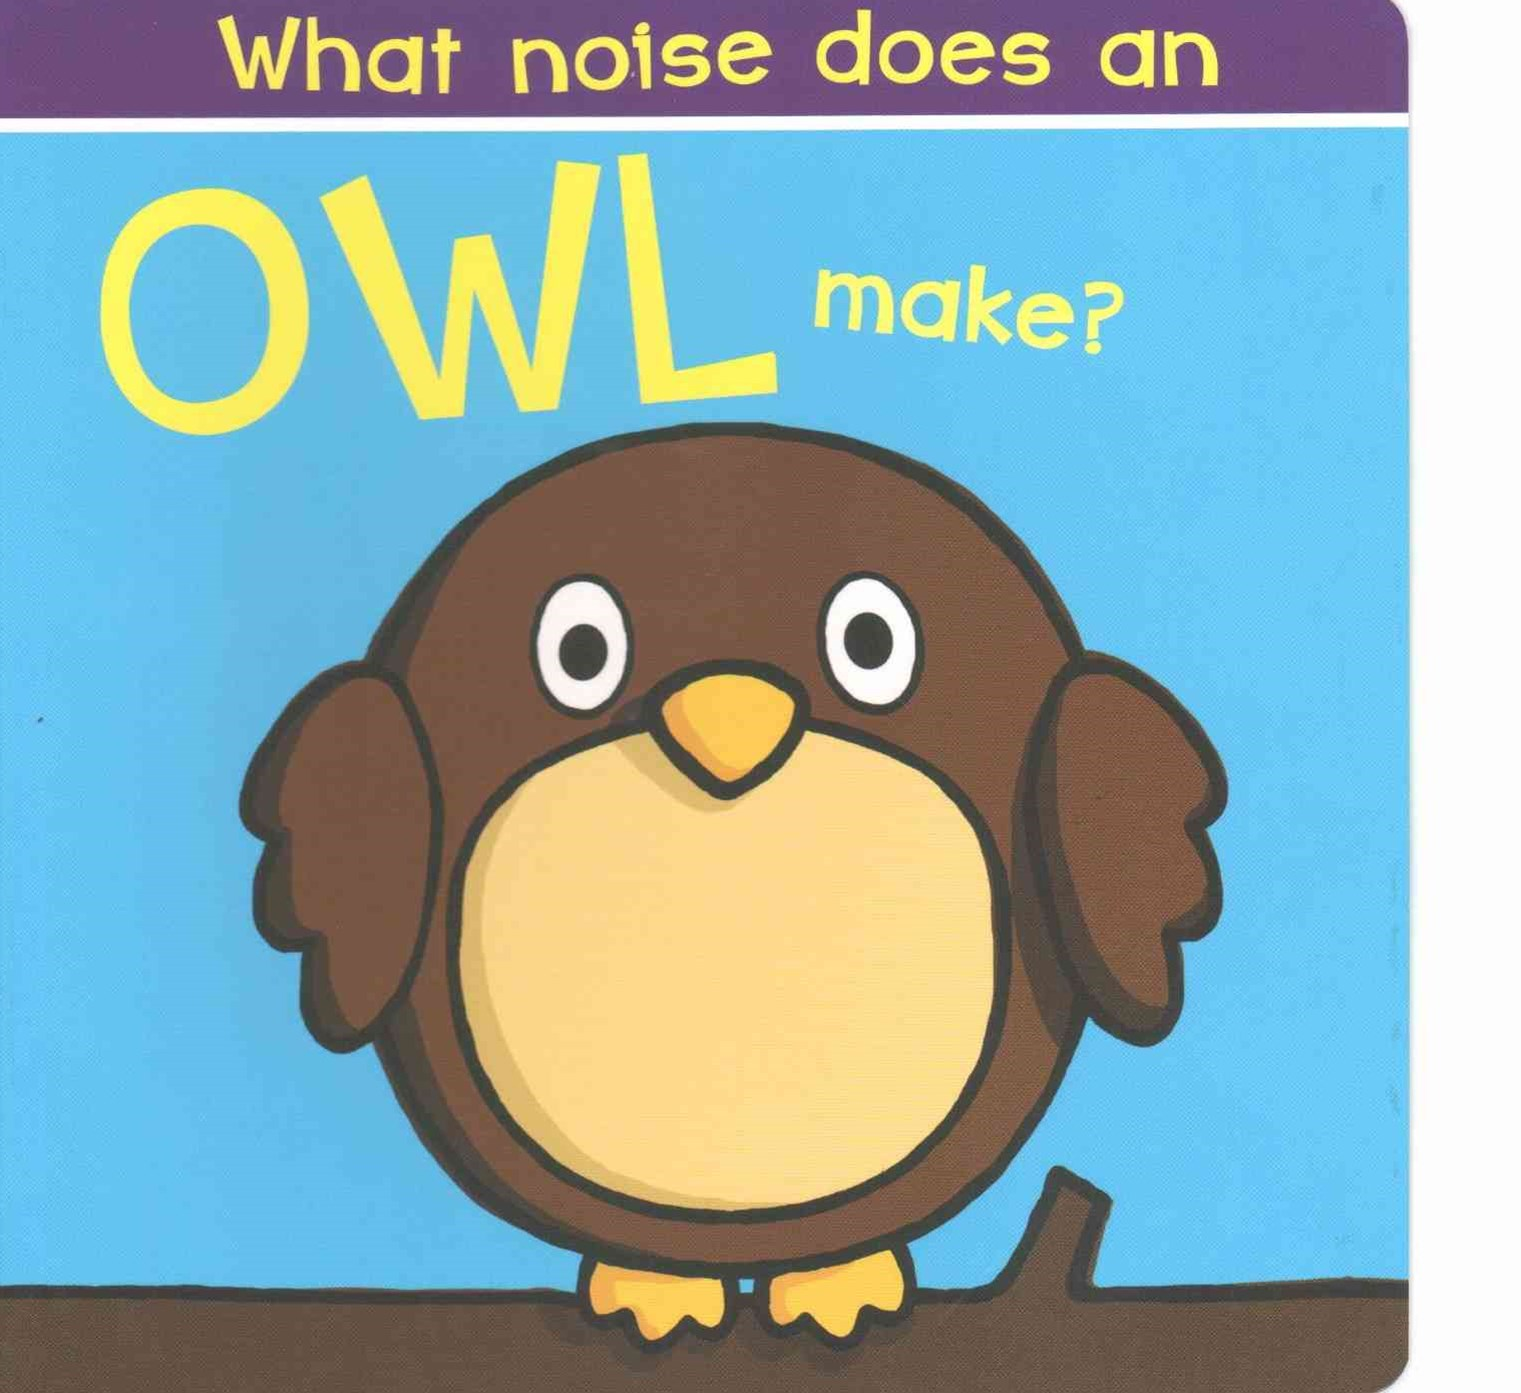 What Noise Does an Owl Make?